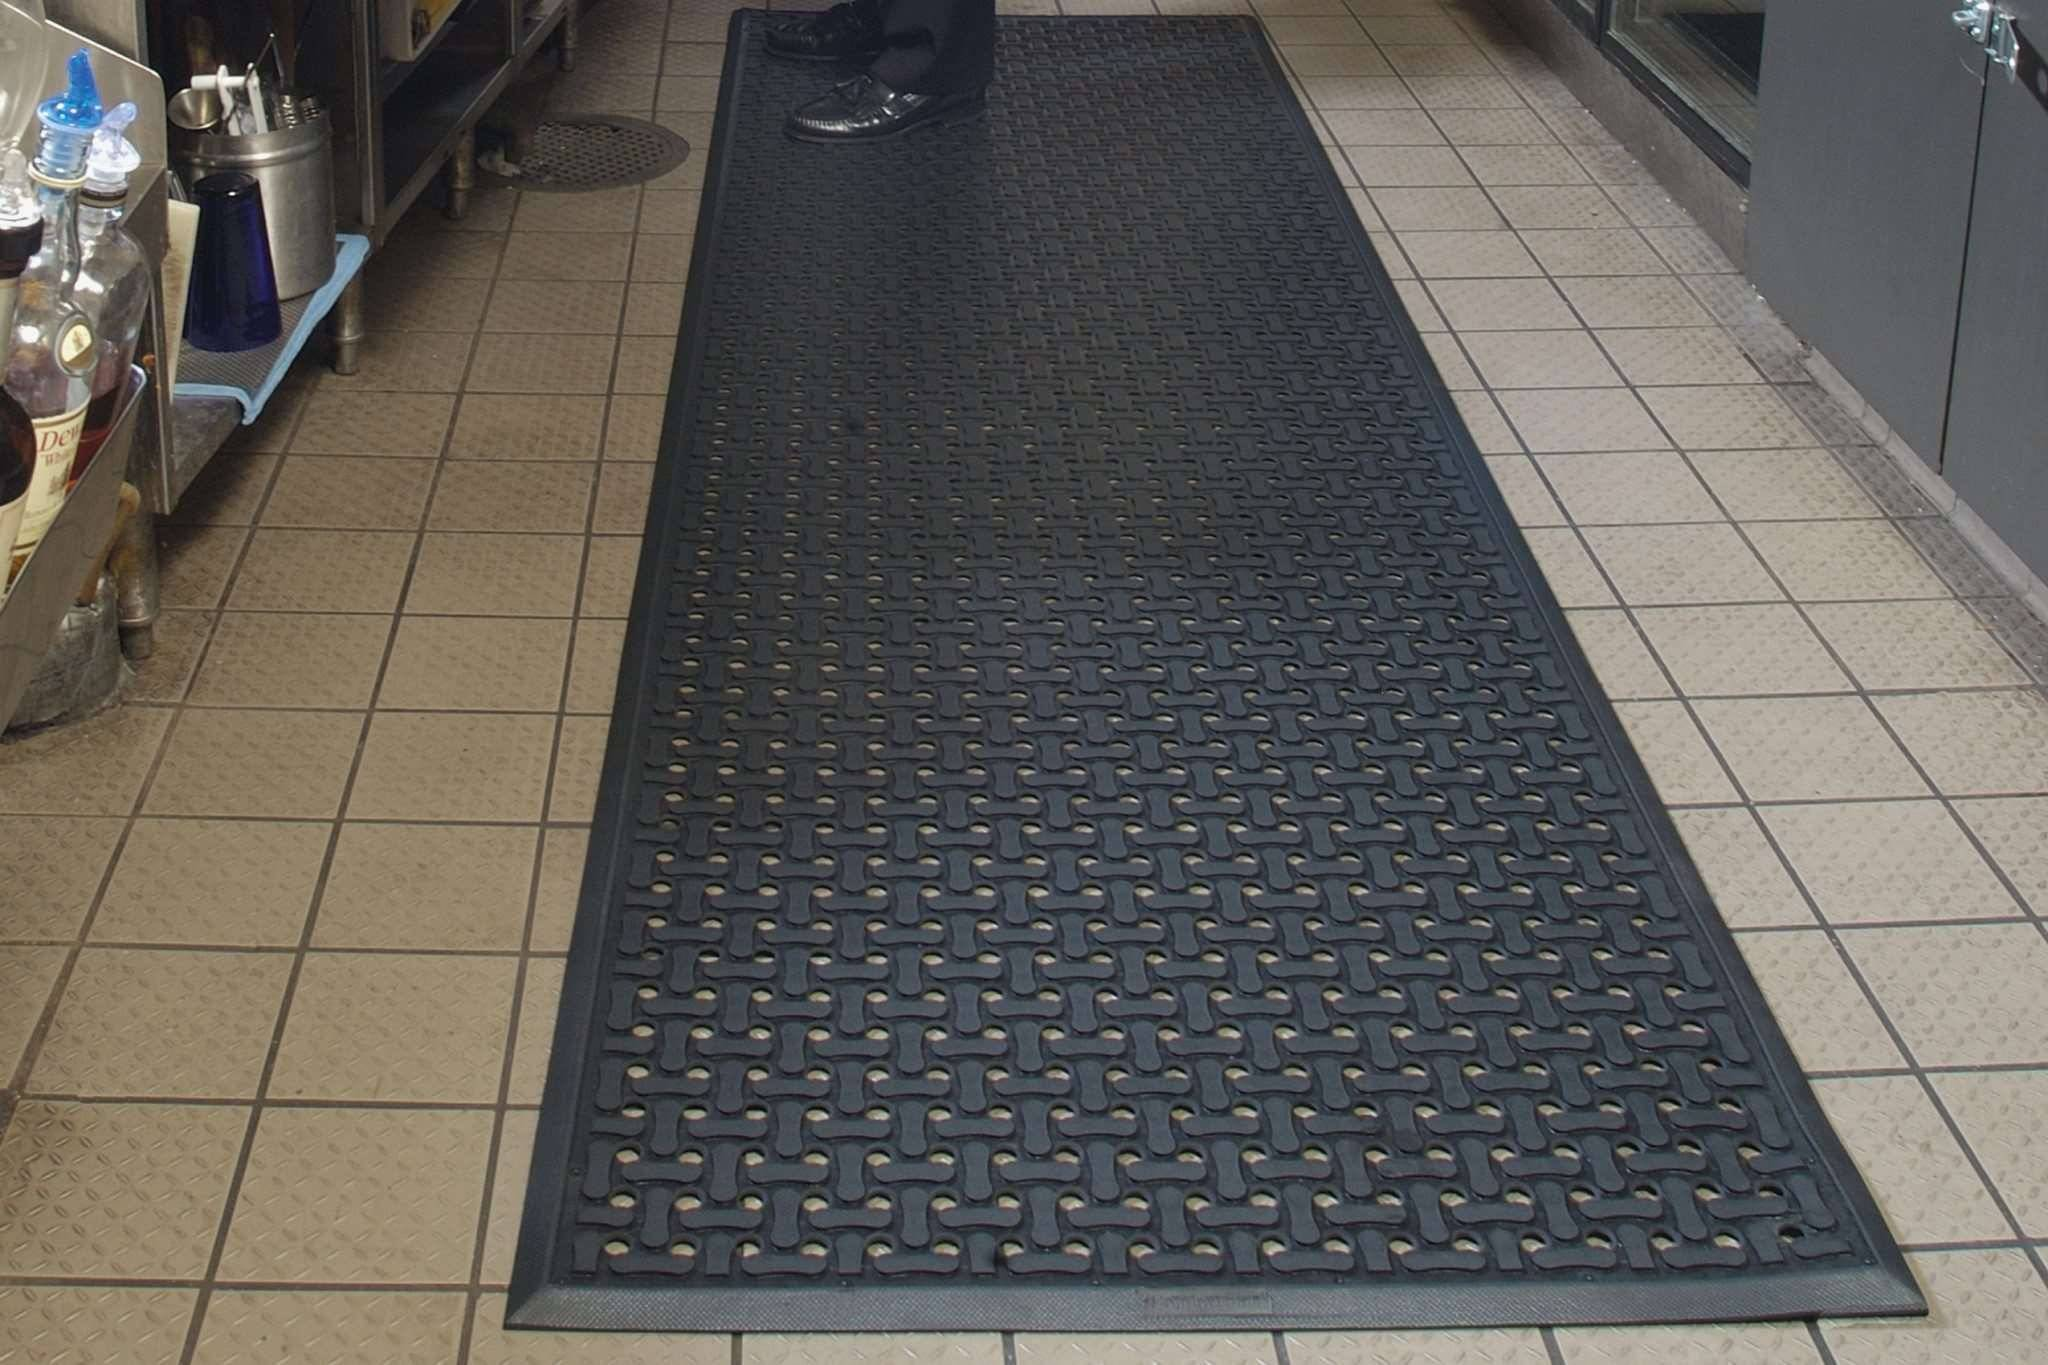 Comfort Flow Anti Fatigue Mat Drain Through Anti Fatigue